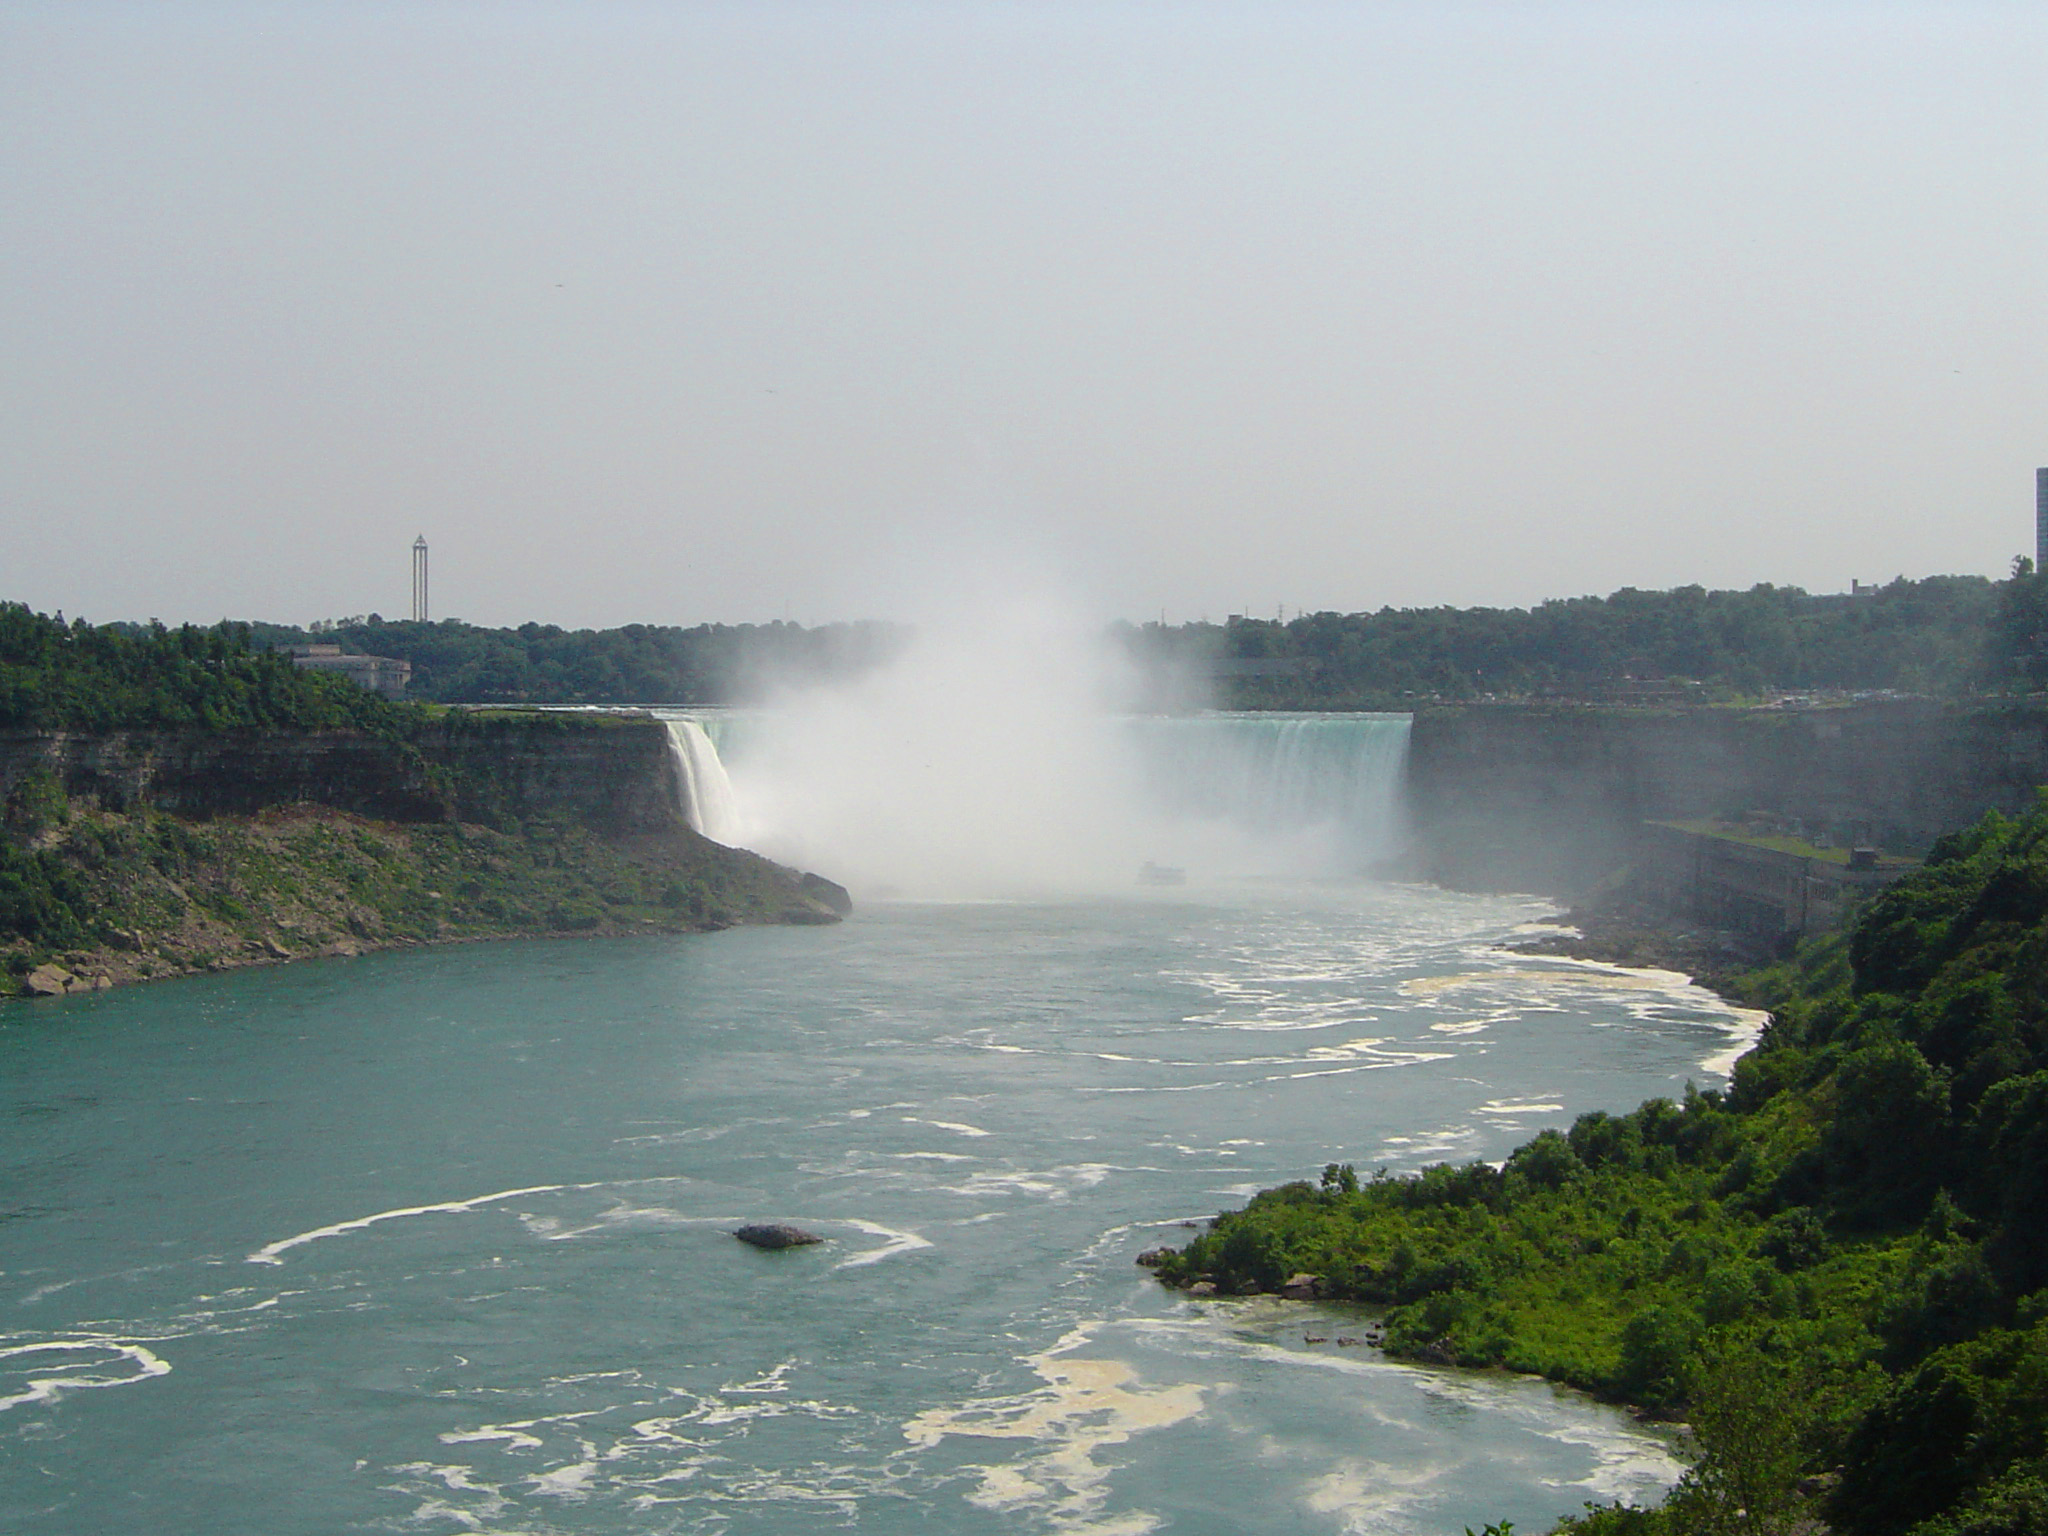 View down the Niagara River of the Horseshoe Falls at the Niagara Falls on the border between Canada and the USA